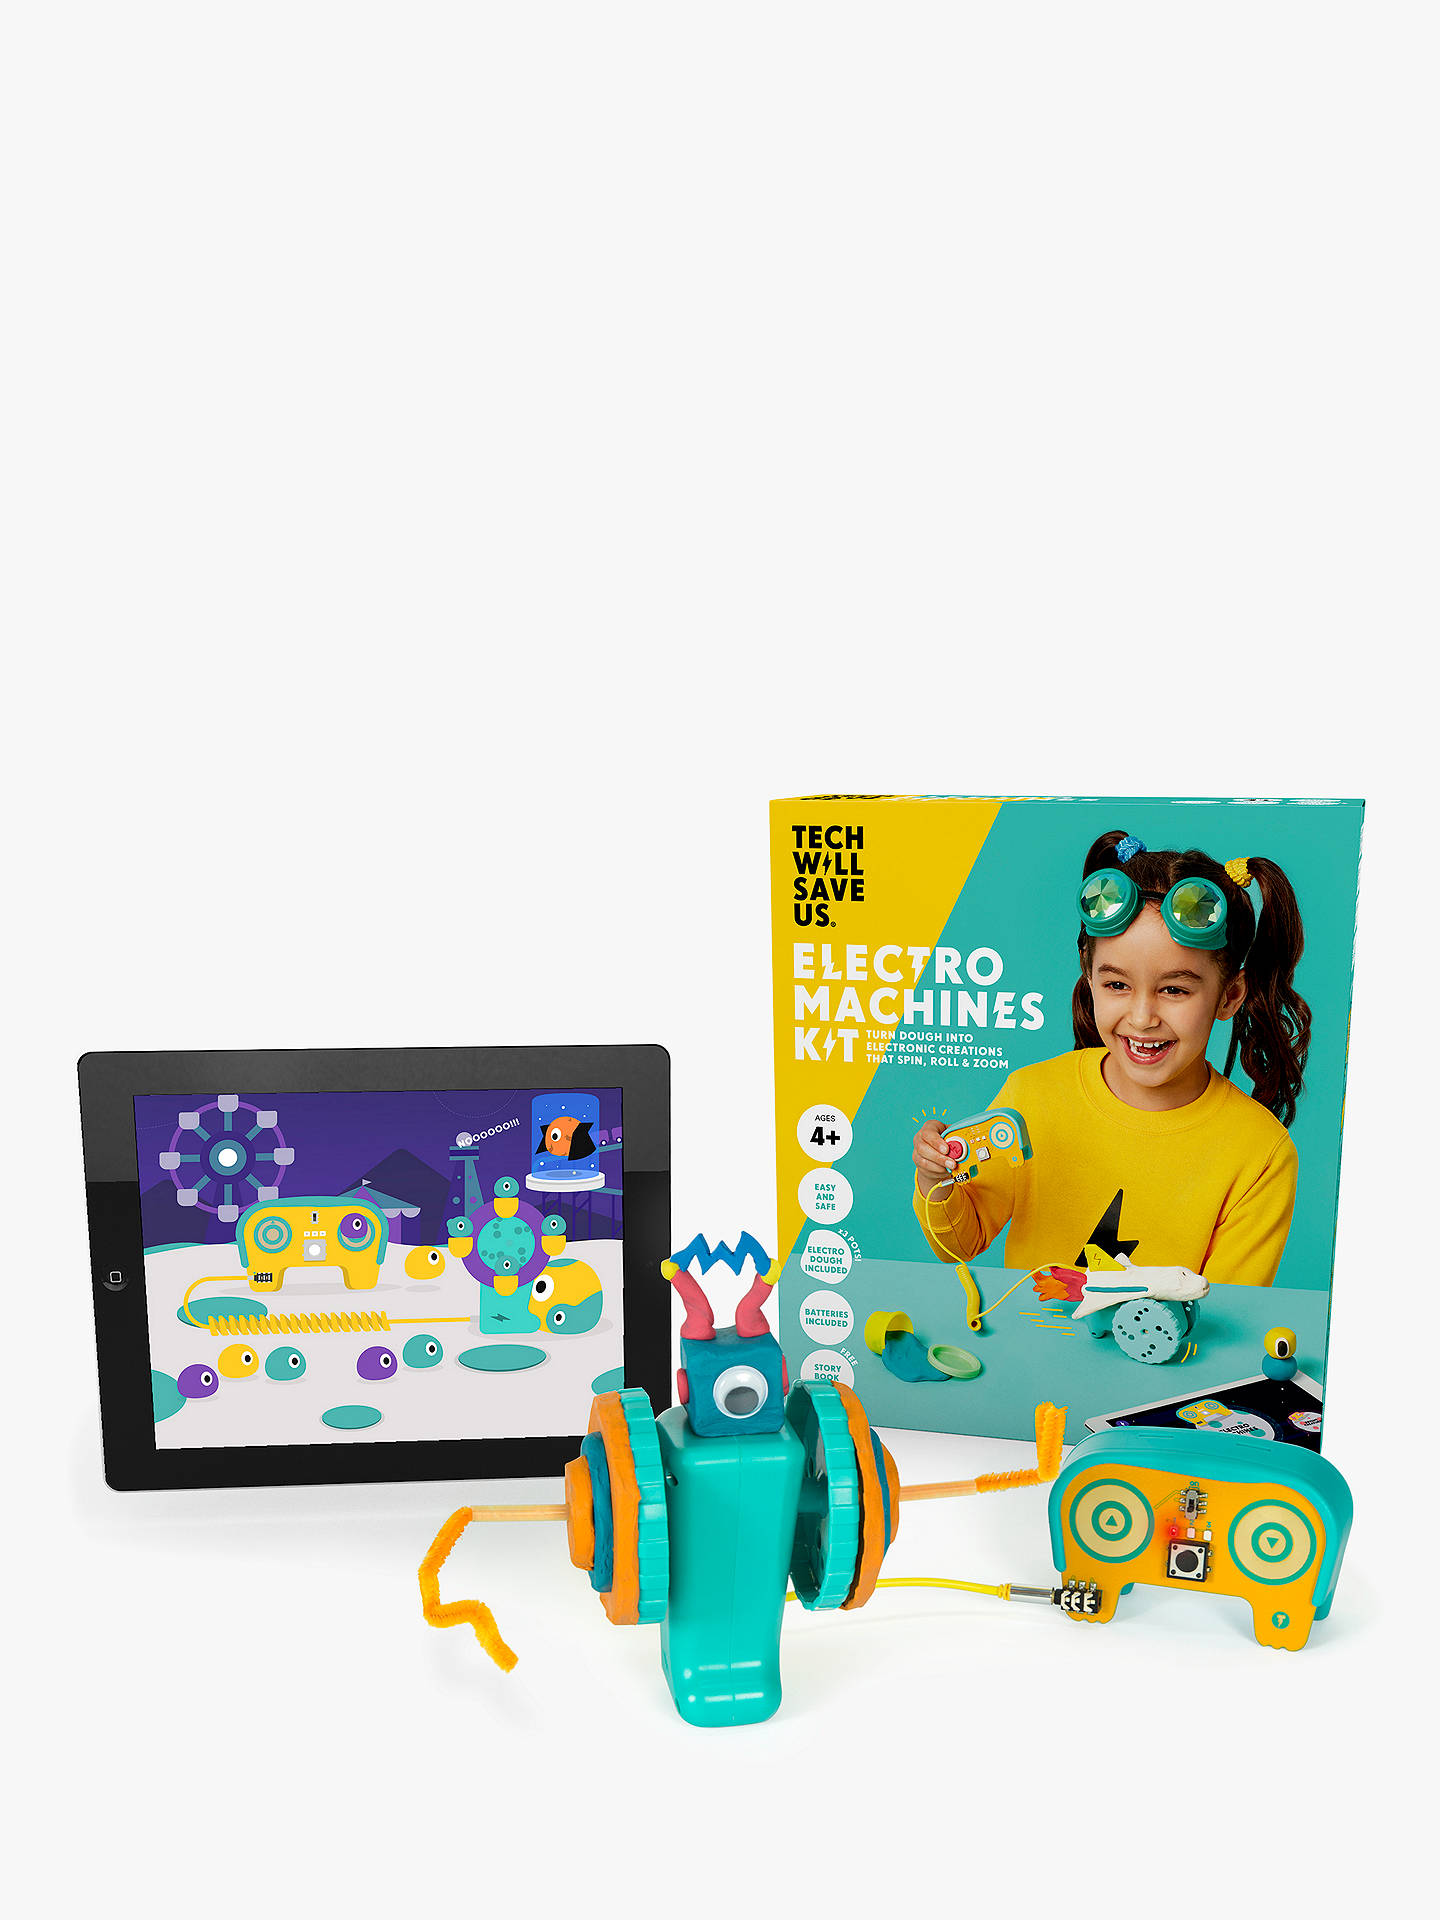 Buy Tech Will Save Us Electro Machines Kit Online at johnlewis.com